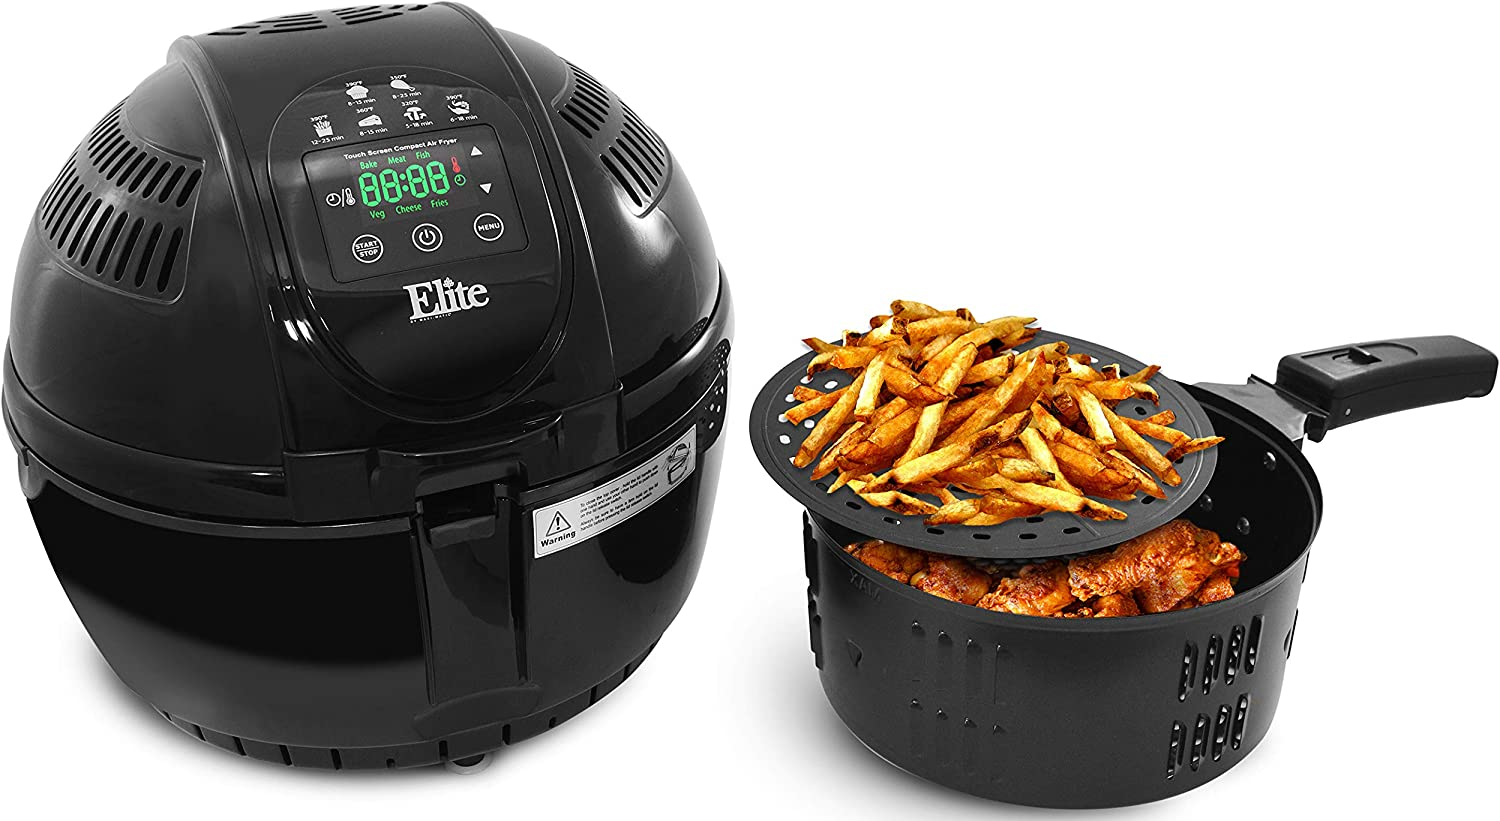 Elite Platinum EAF-2500D Dual Basket 3.5Qt Electric Digital Hot Air Fryer, 1400-Watts, Oil-Less Healthy Cooker, Temp/Timer Settings, PFOA/PTFE Free, Includes 26 Full Color Recipes, Black